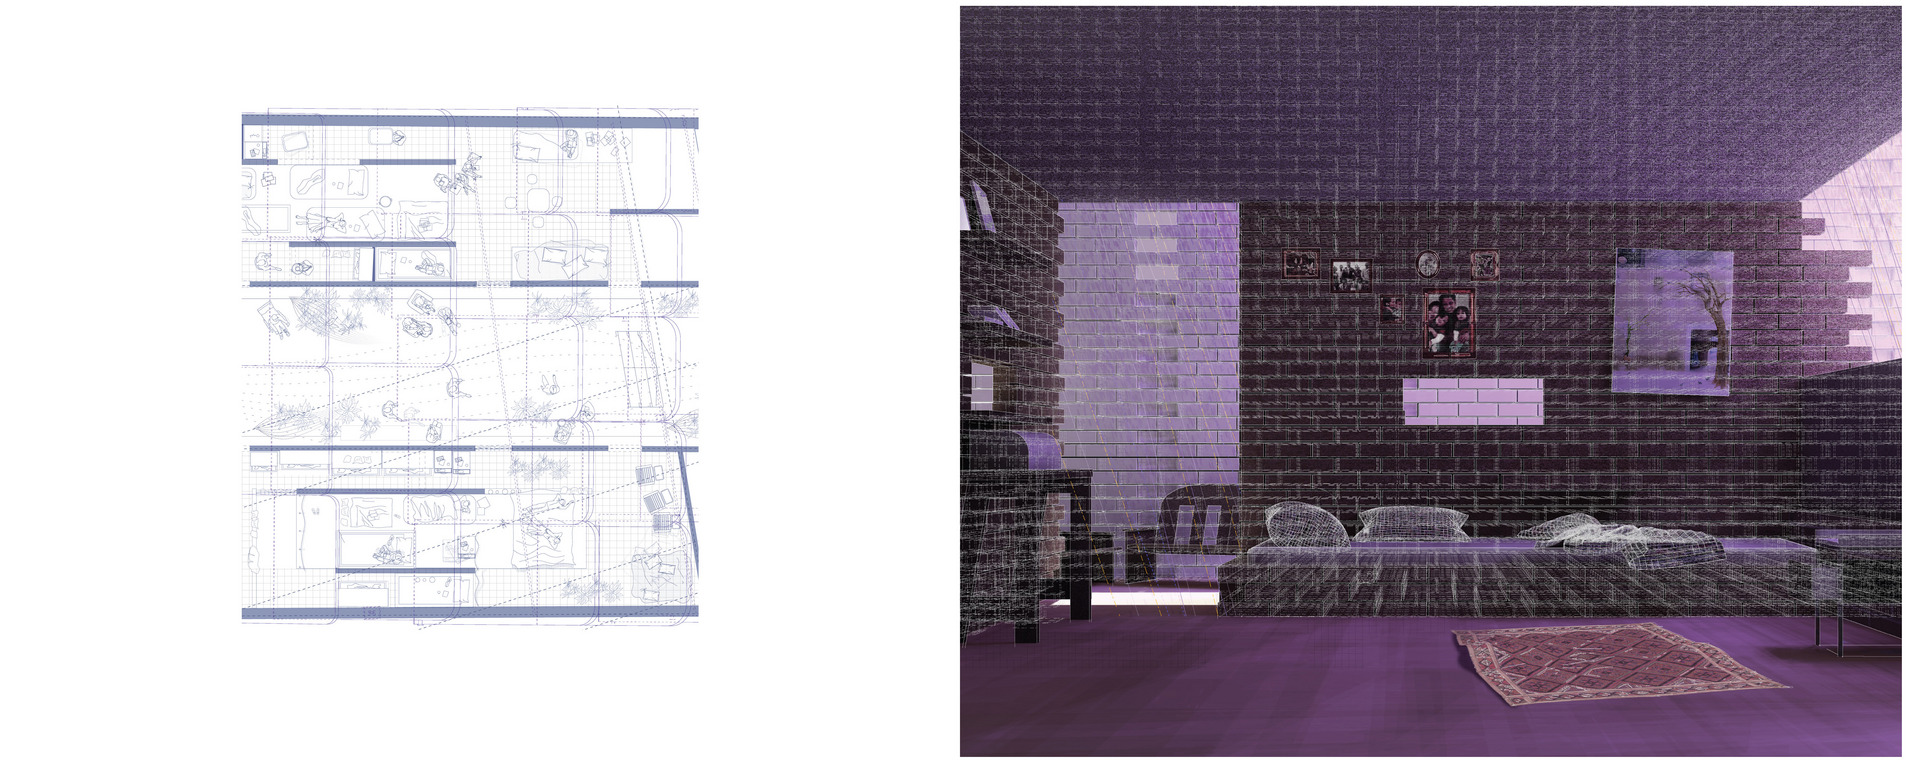 Resting areas, collective bedroom spaces.